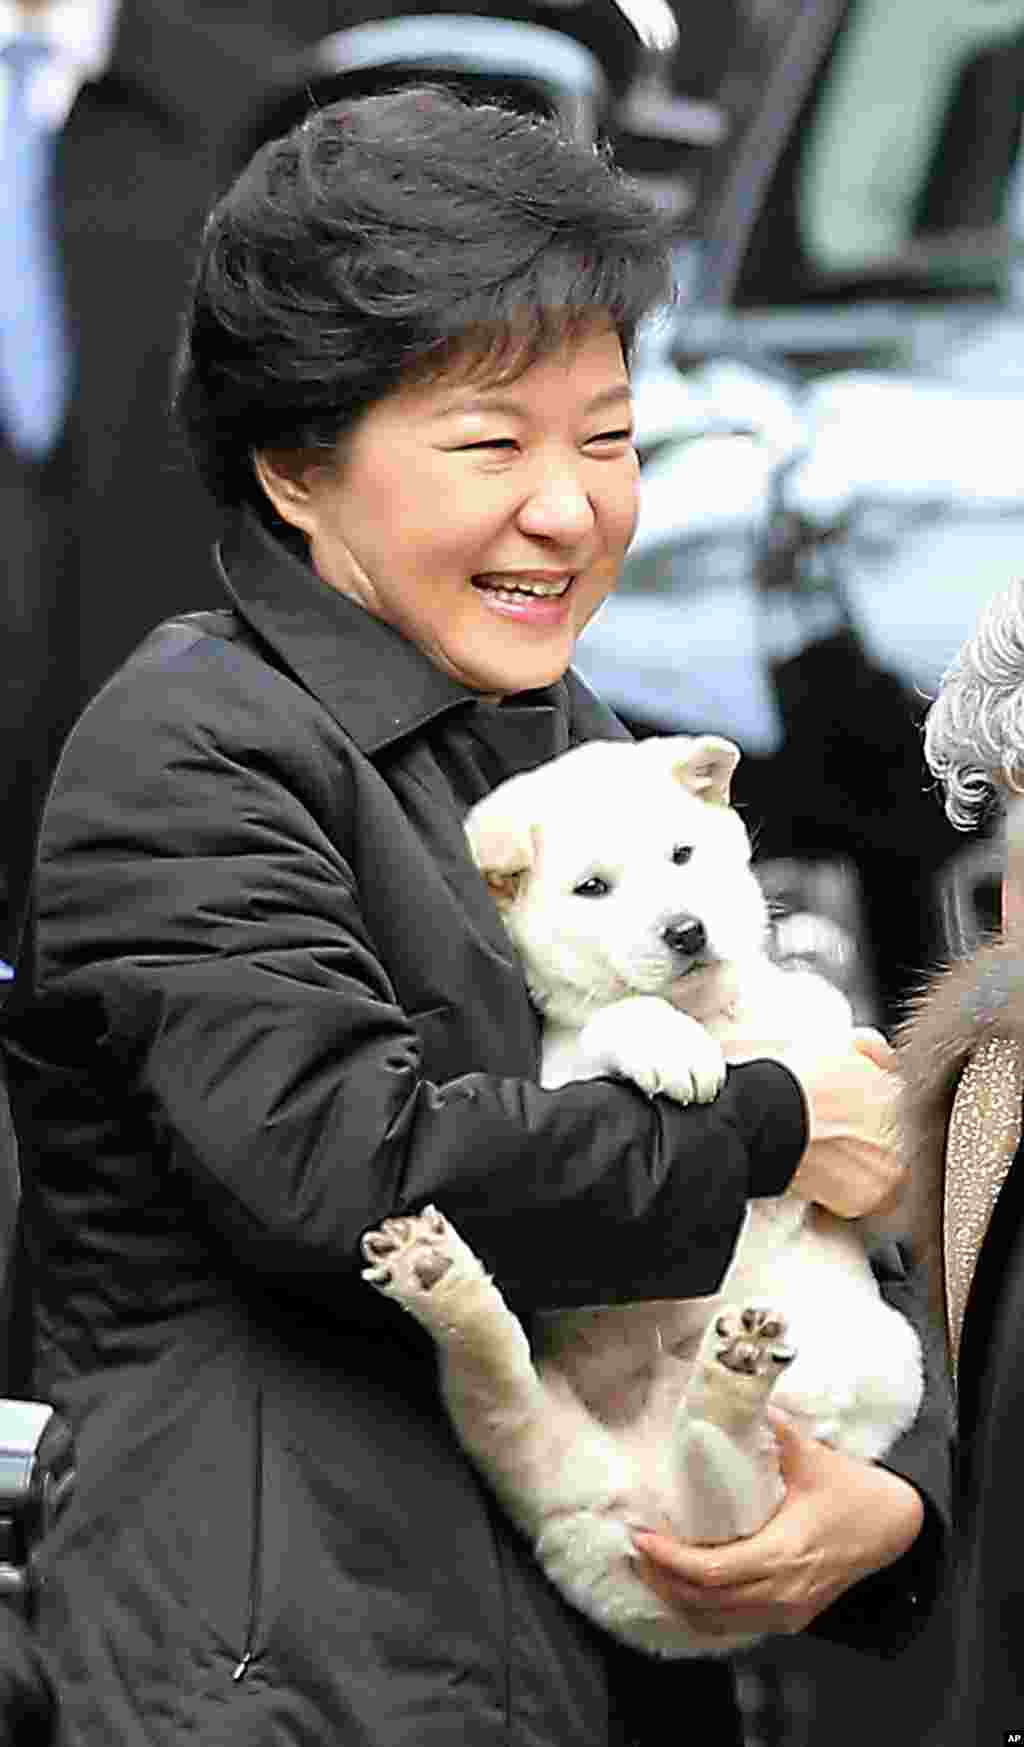 South Korean President Park Geun-hye holds a puppy presented by her neighbor as she leaves her home for the presidential inauguration ceremony in Seoul.